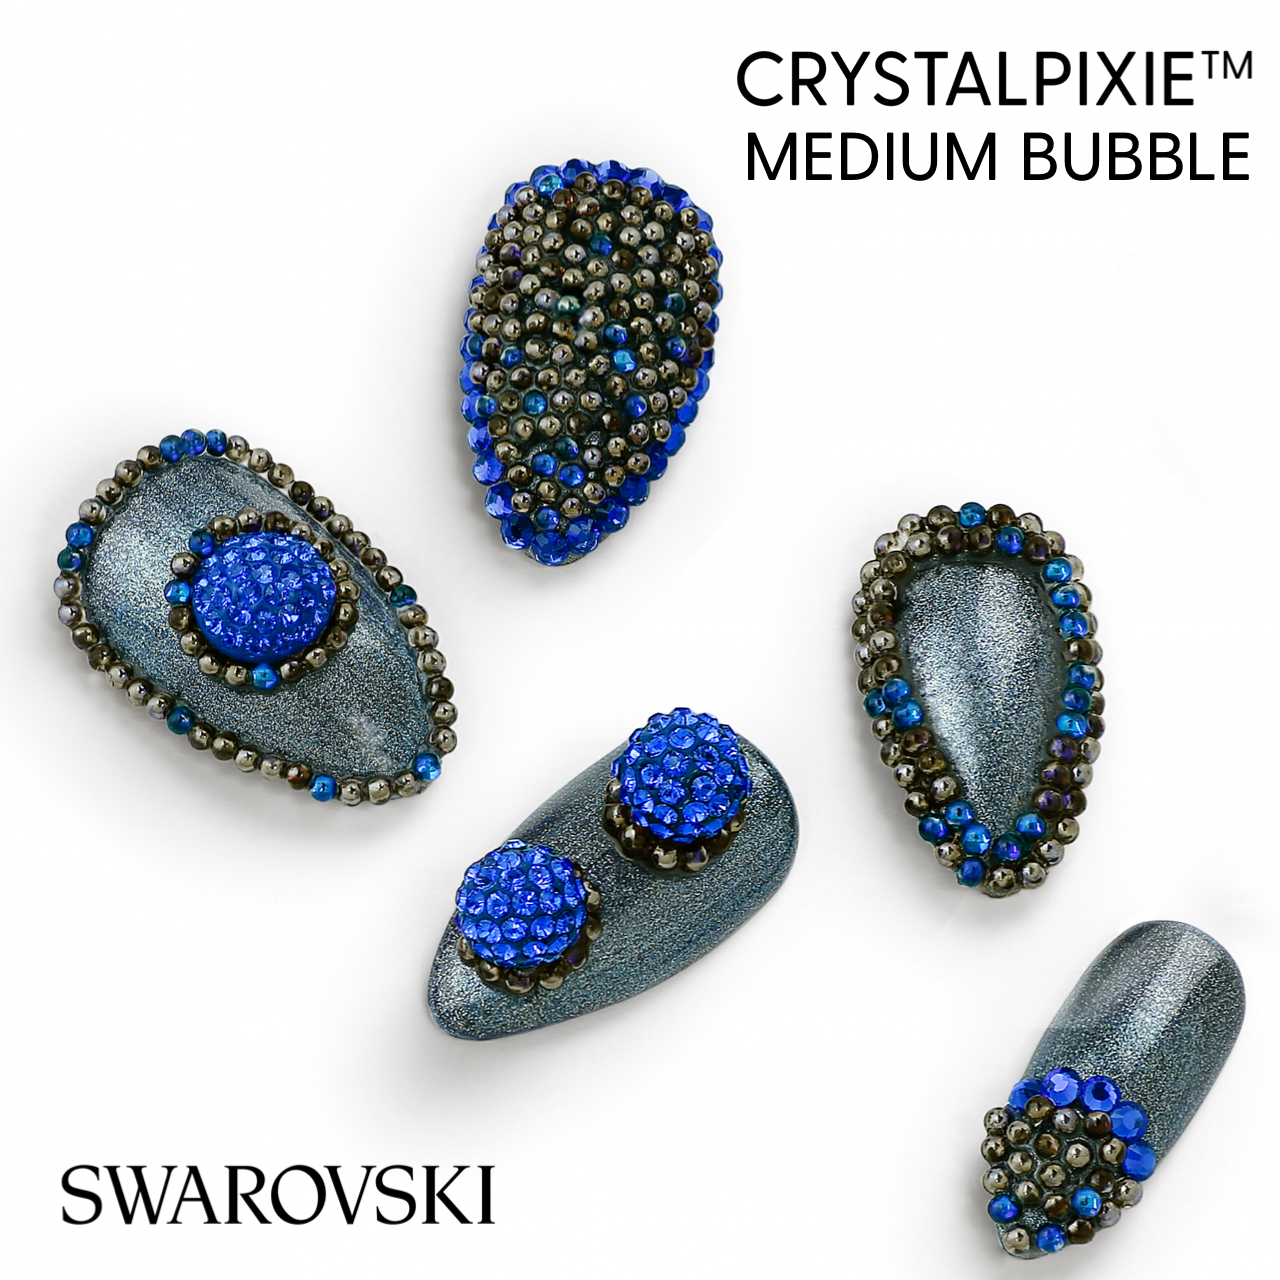 Swarovski CrystalPixie Bubble Medium